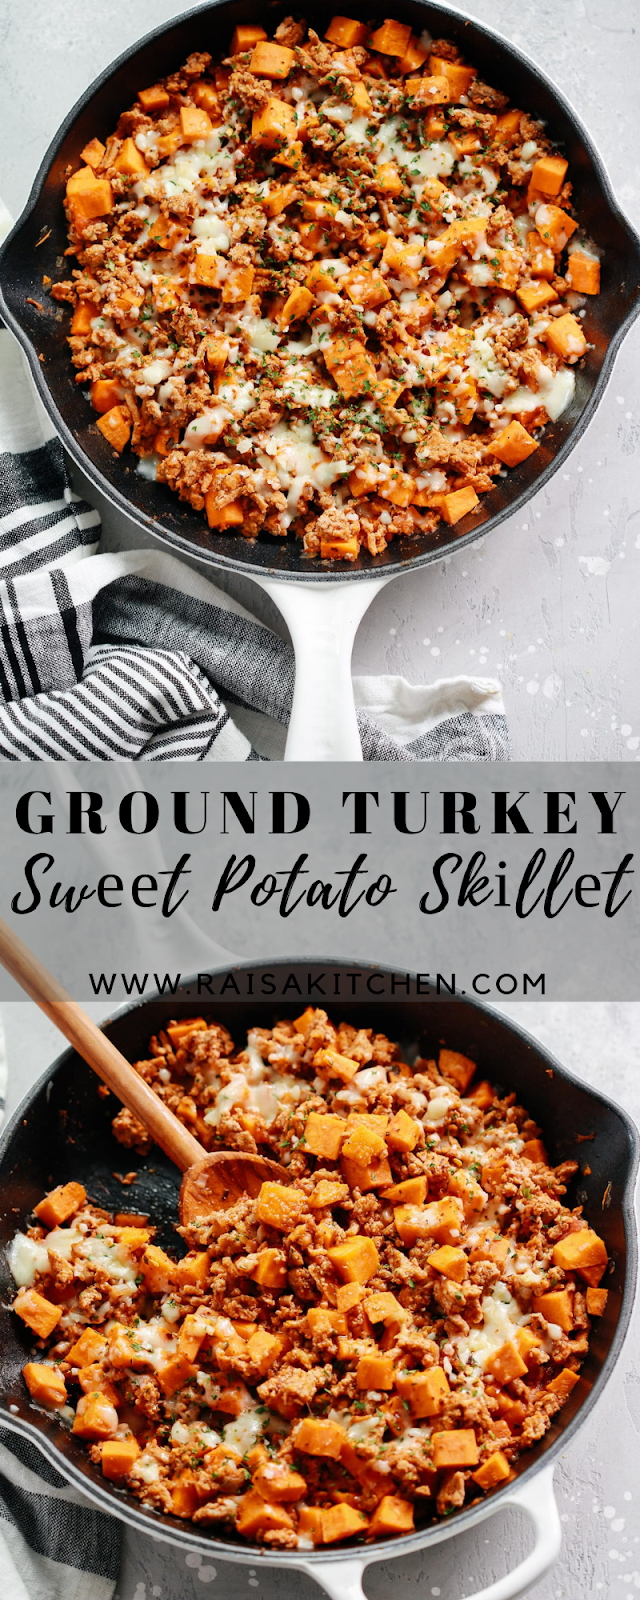 Ground Turkey Swееt Potato Skіllеt